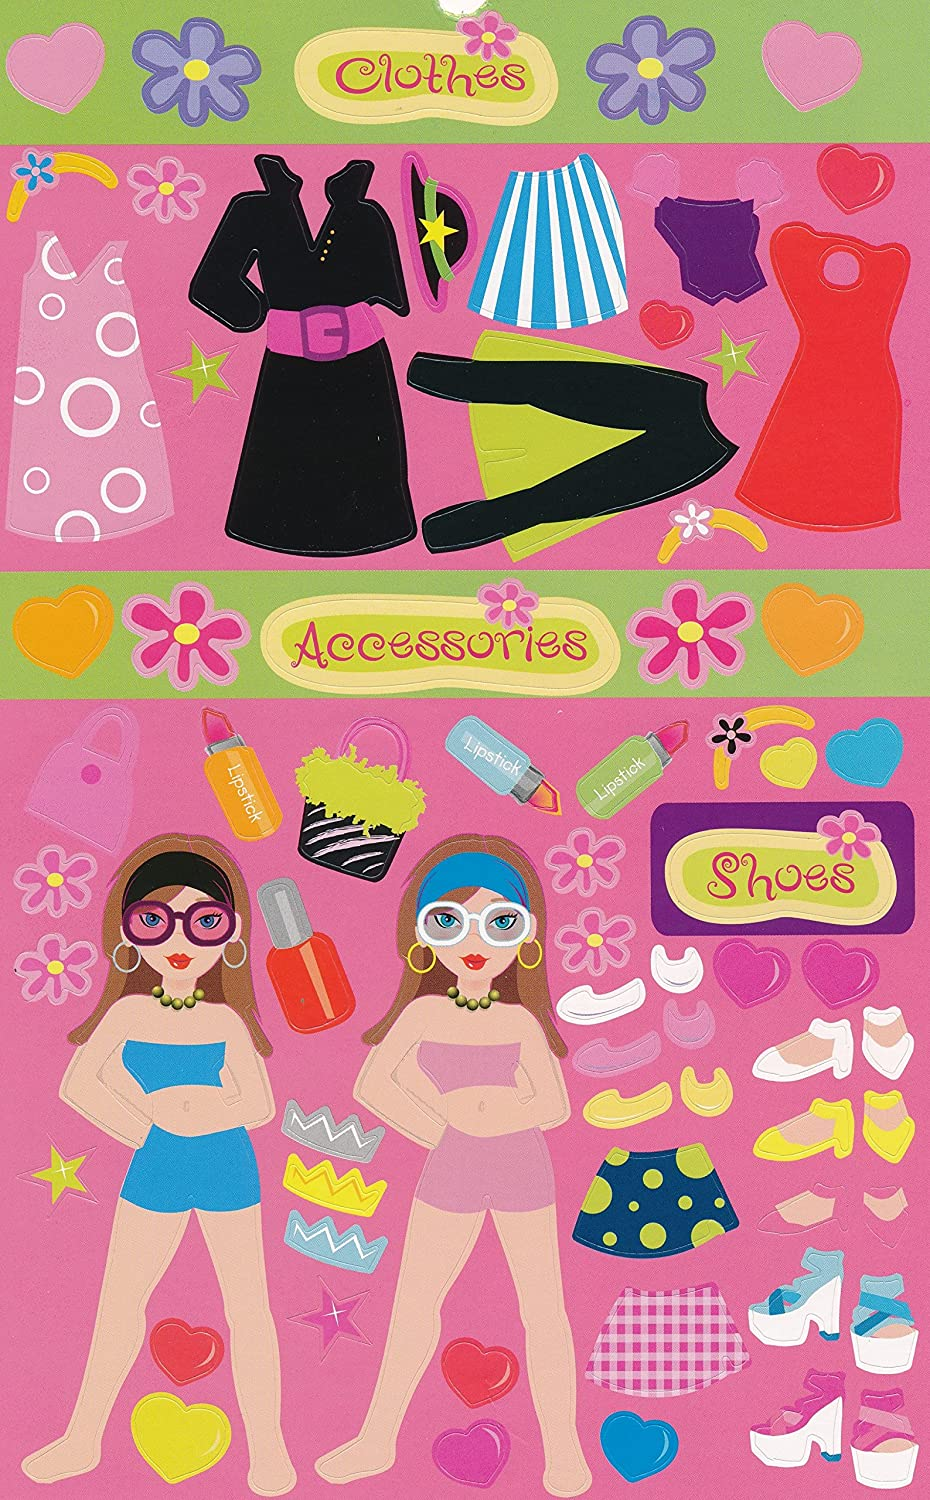 Fashion Diva Dress Up and Shopping Sticker Books for Kids 3 Books over 1000 stickers RHM Stickers SG/_B07CTC98QZ/_US